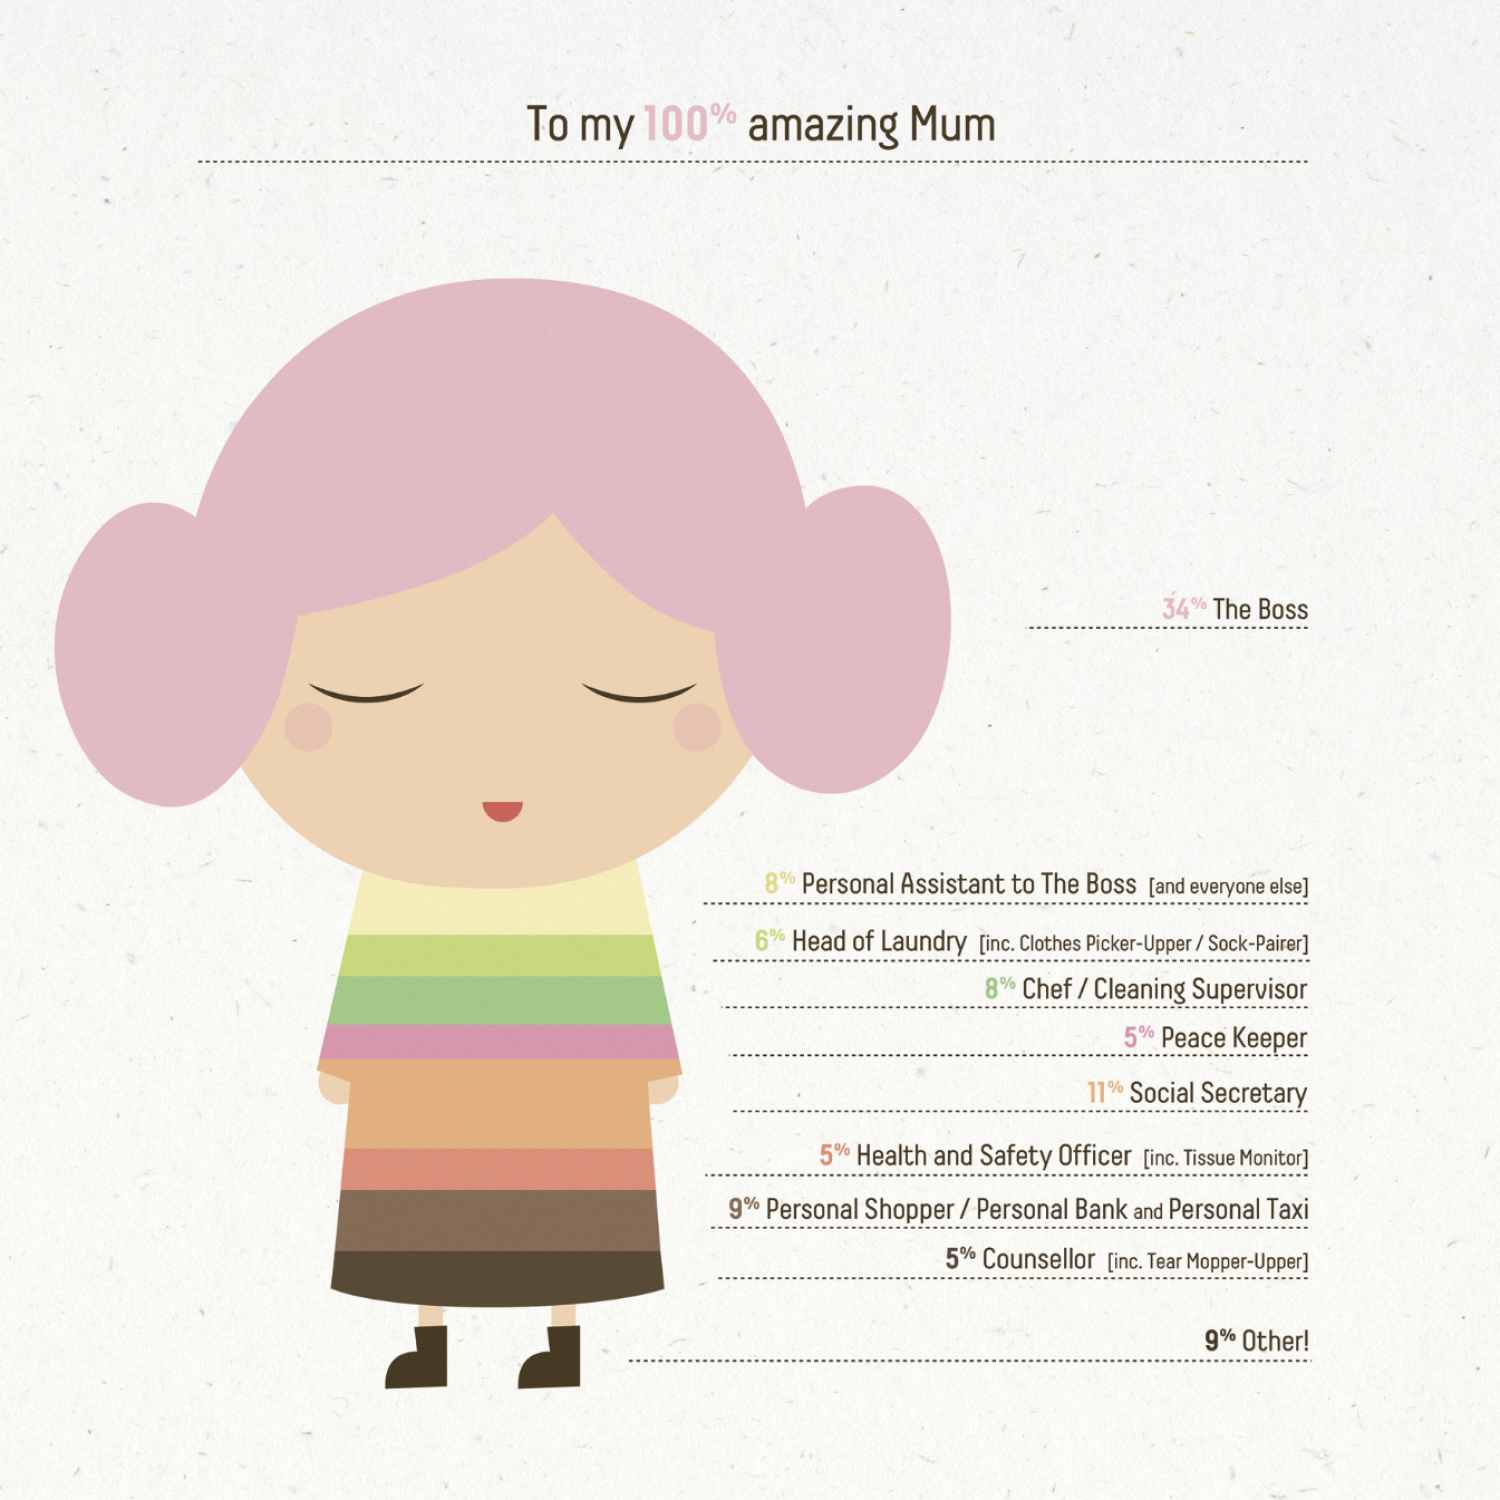 My 100% amazing mom Infographic